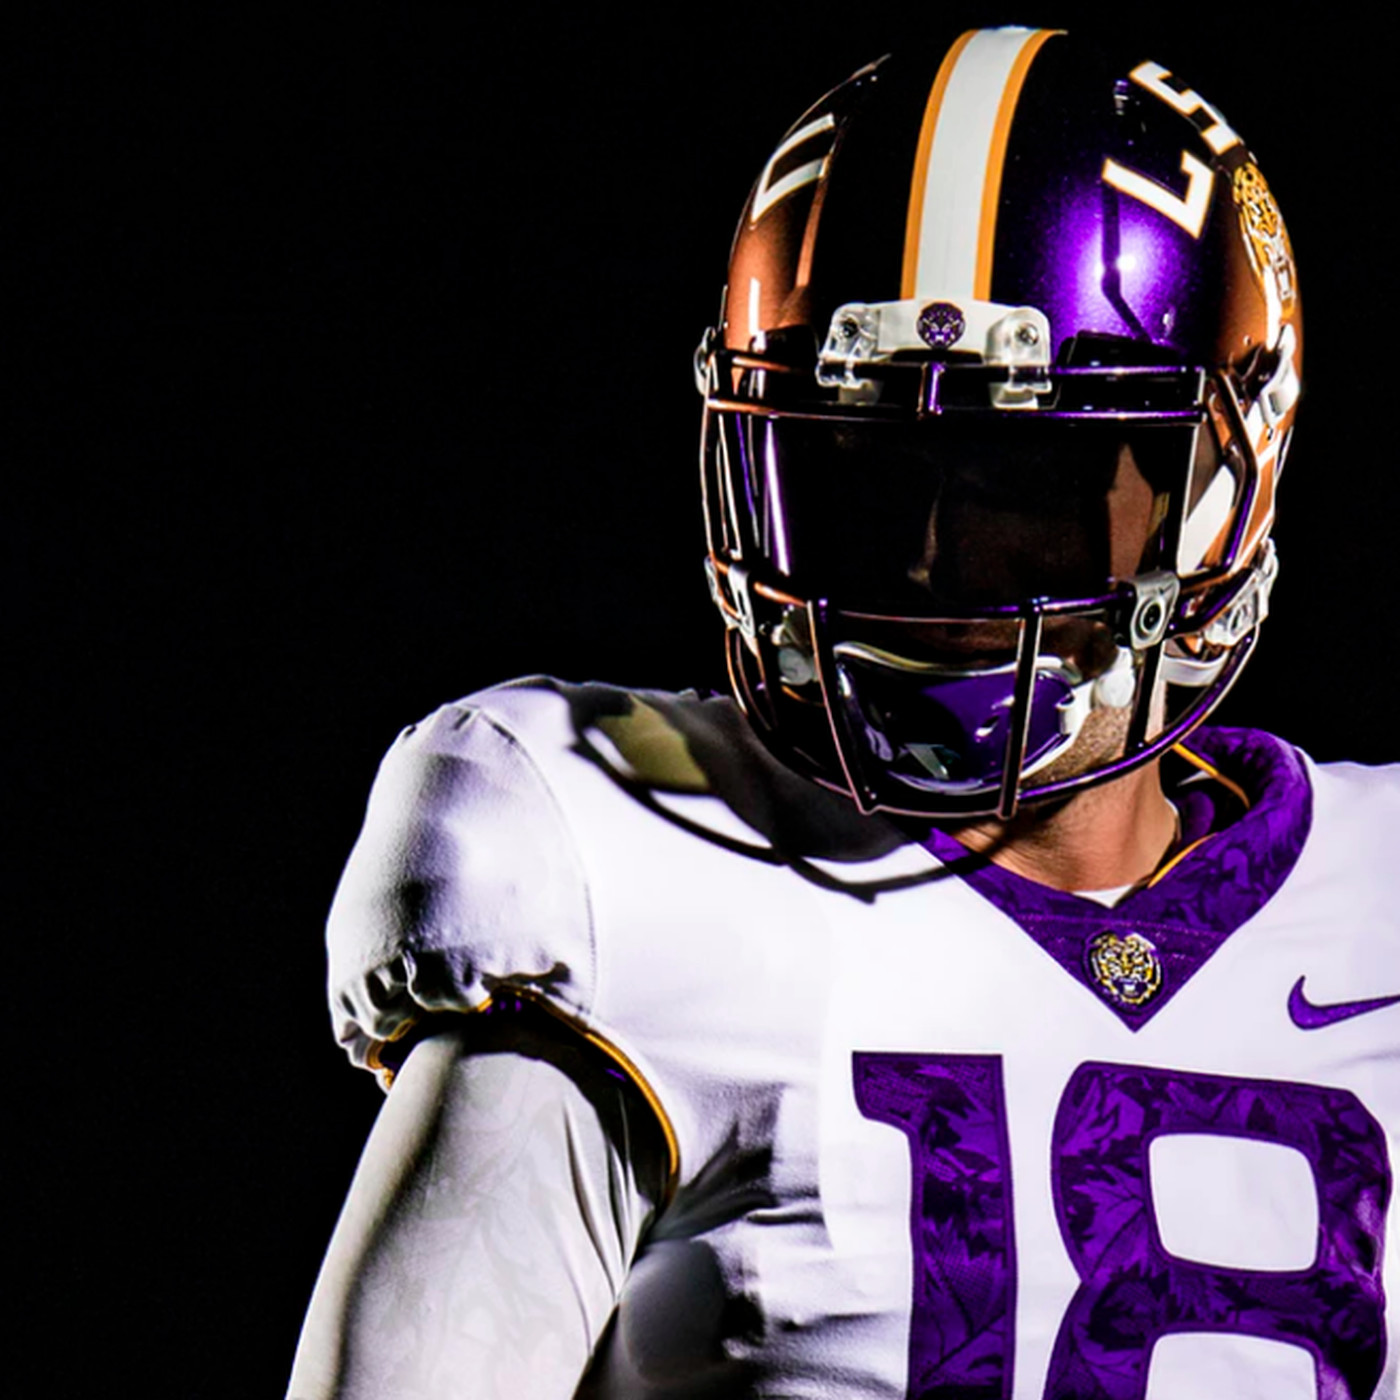 LSU wearing purple helmets that CHANGE COLOR TO GOLD - SBNation.com d5ad93d5a